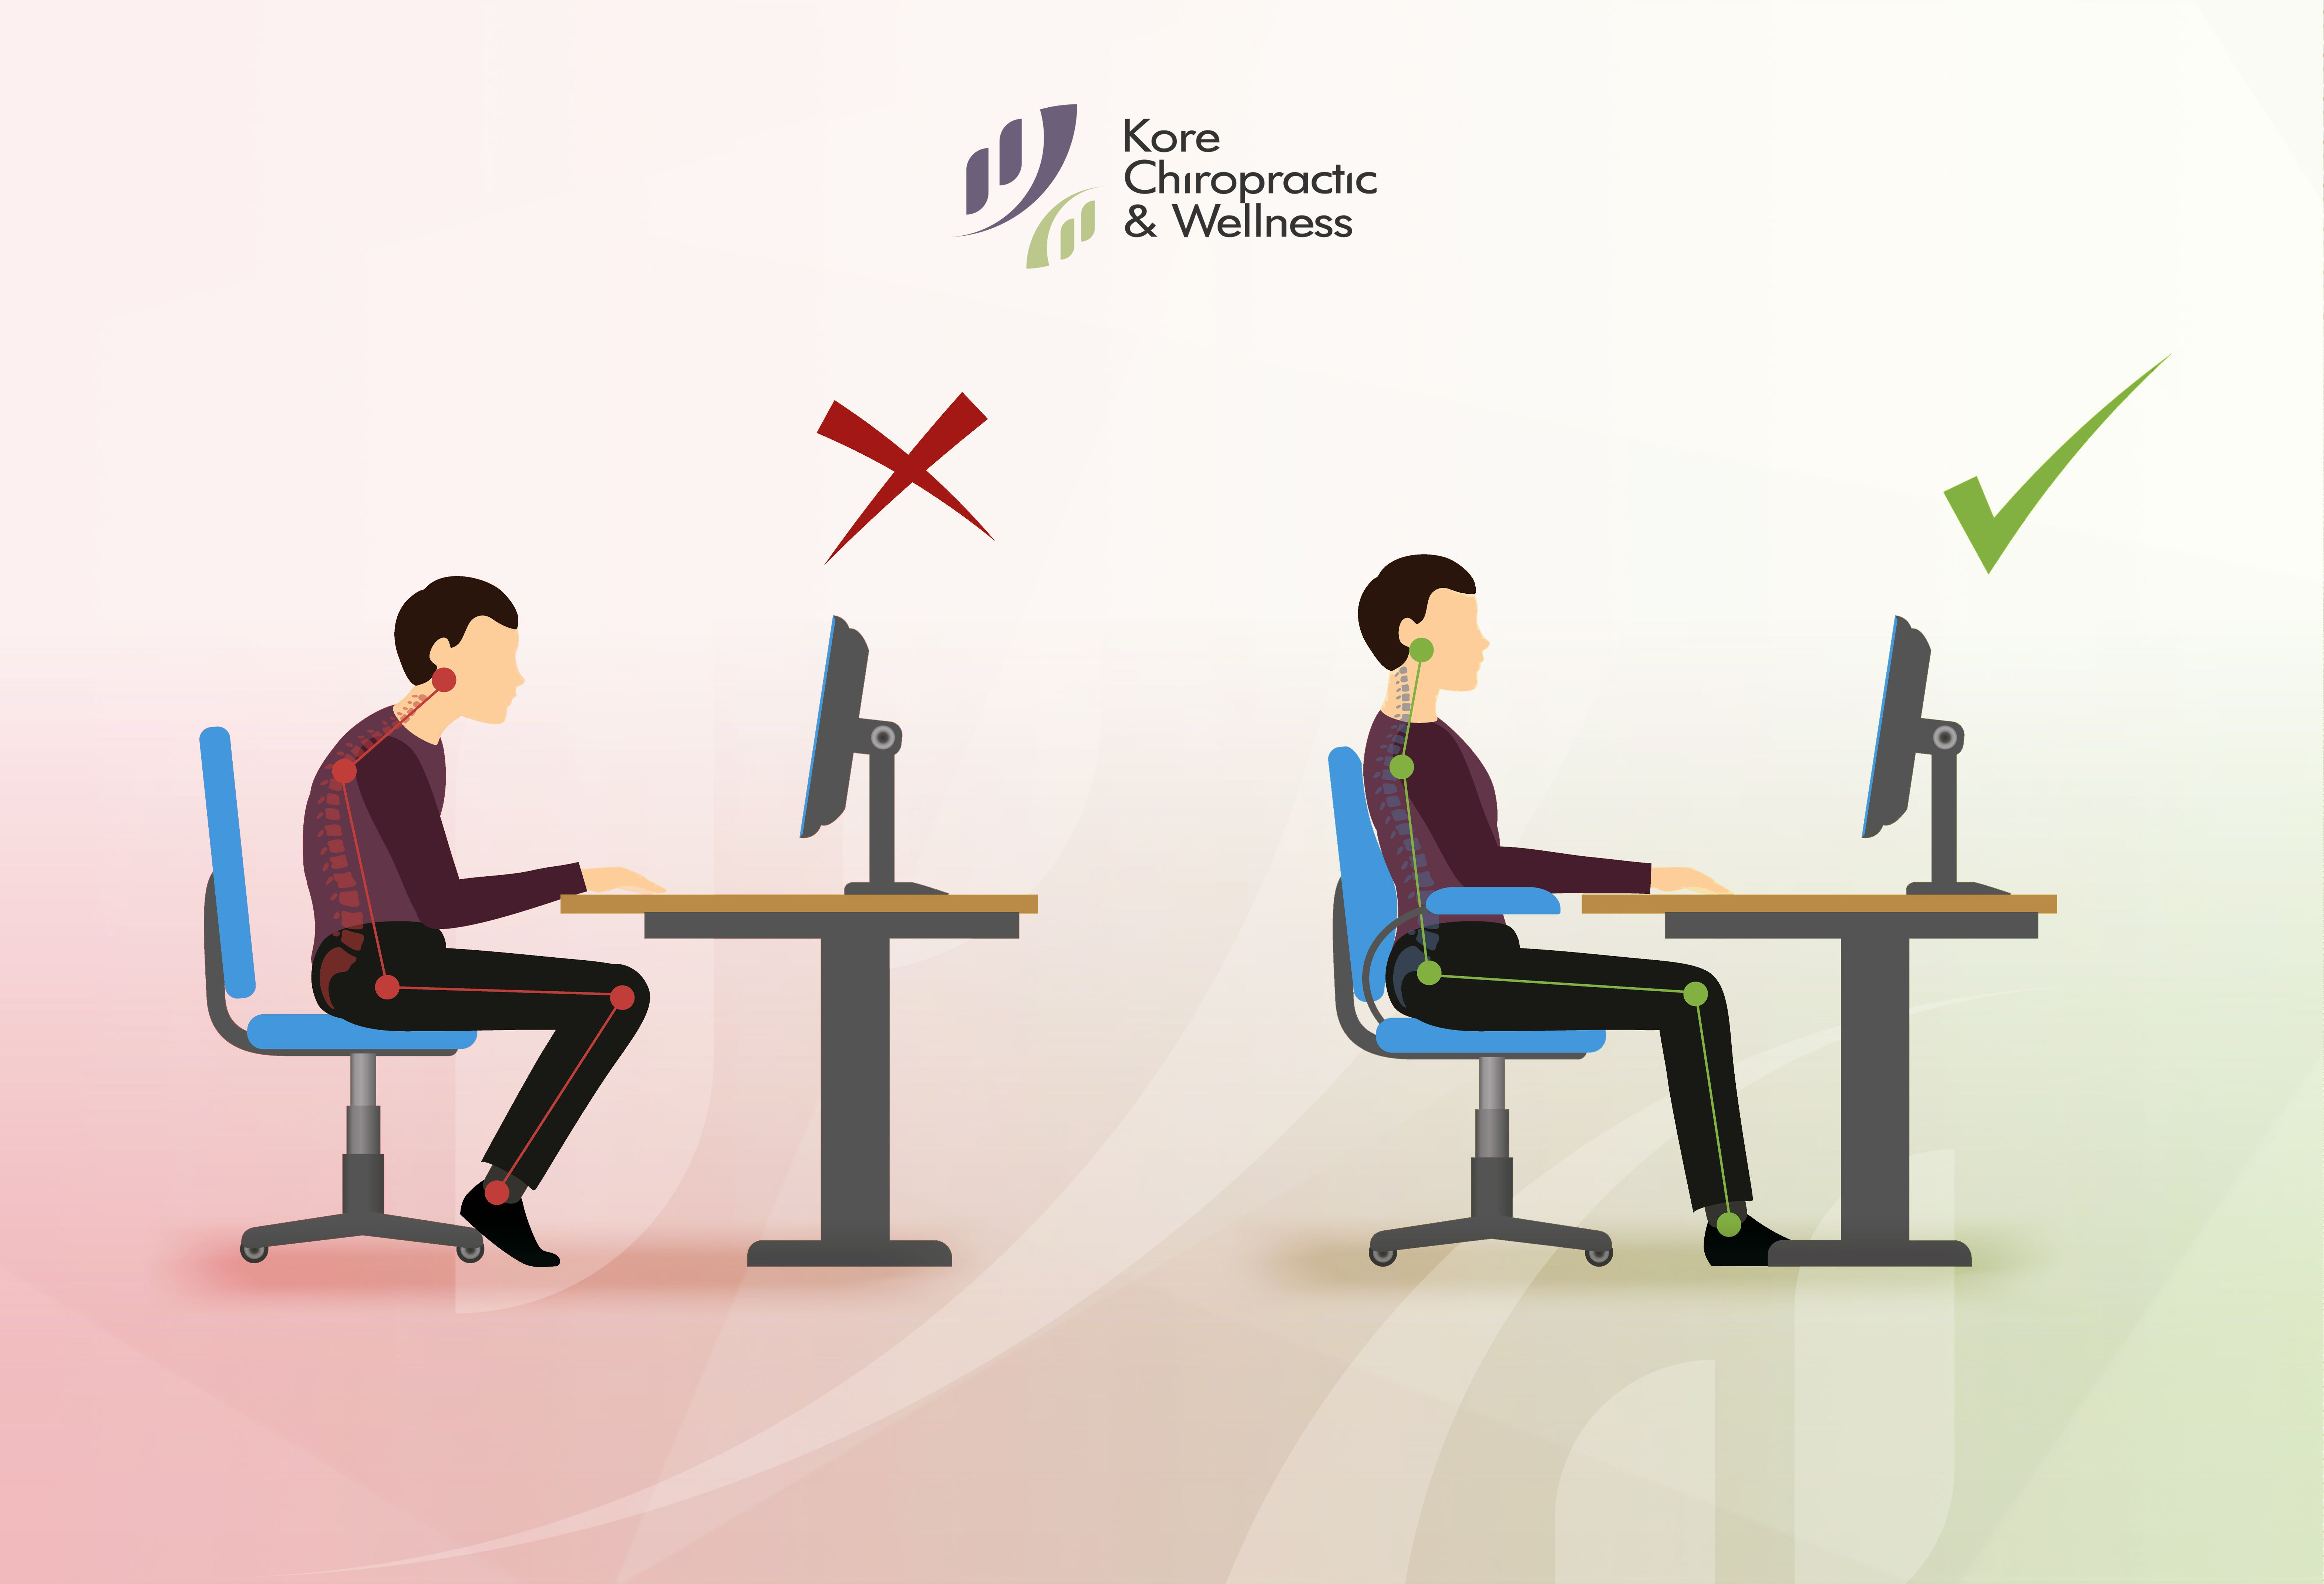 Proper Back Support Arguably The Most Important Part Of Improving Your Posture At Work Is Ensuring Tha In 2020 Chiropractic Wellness Chiropractic Massage Therapy